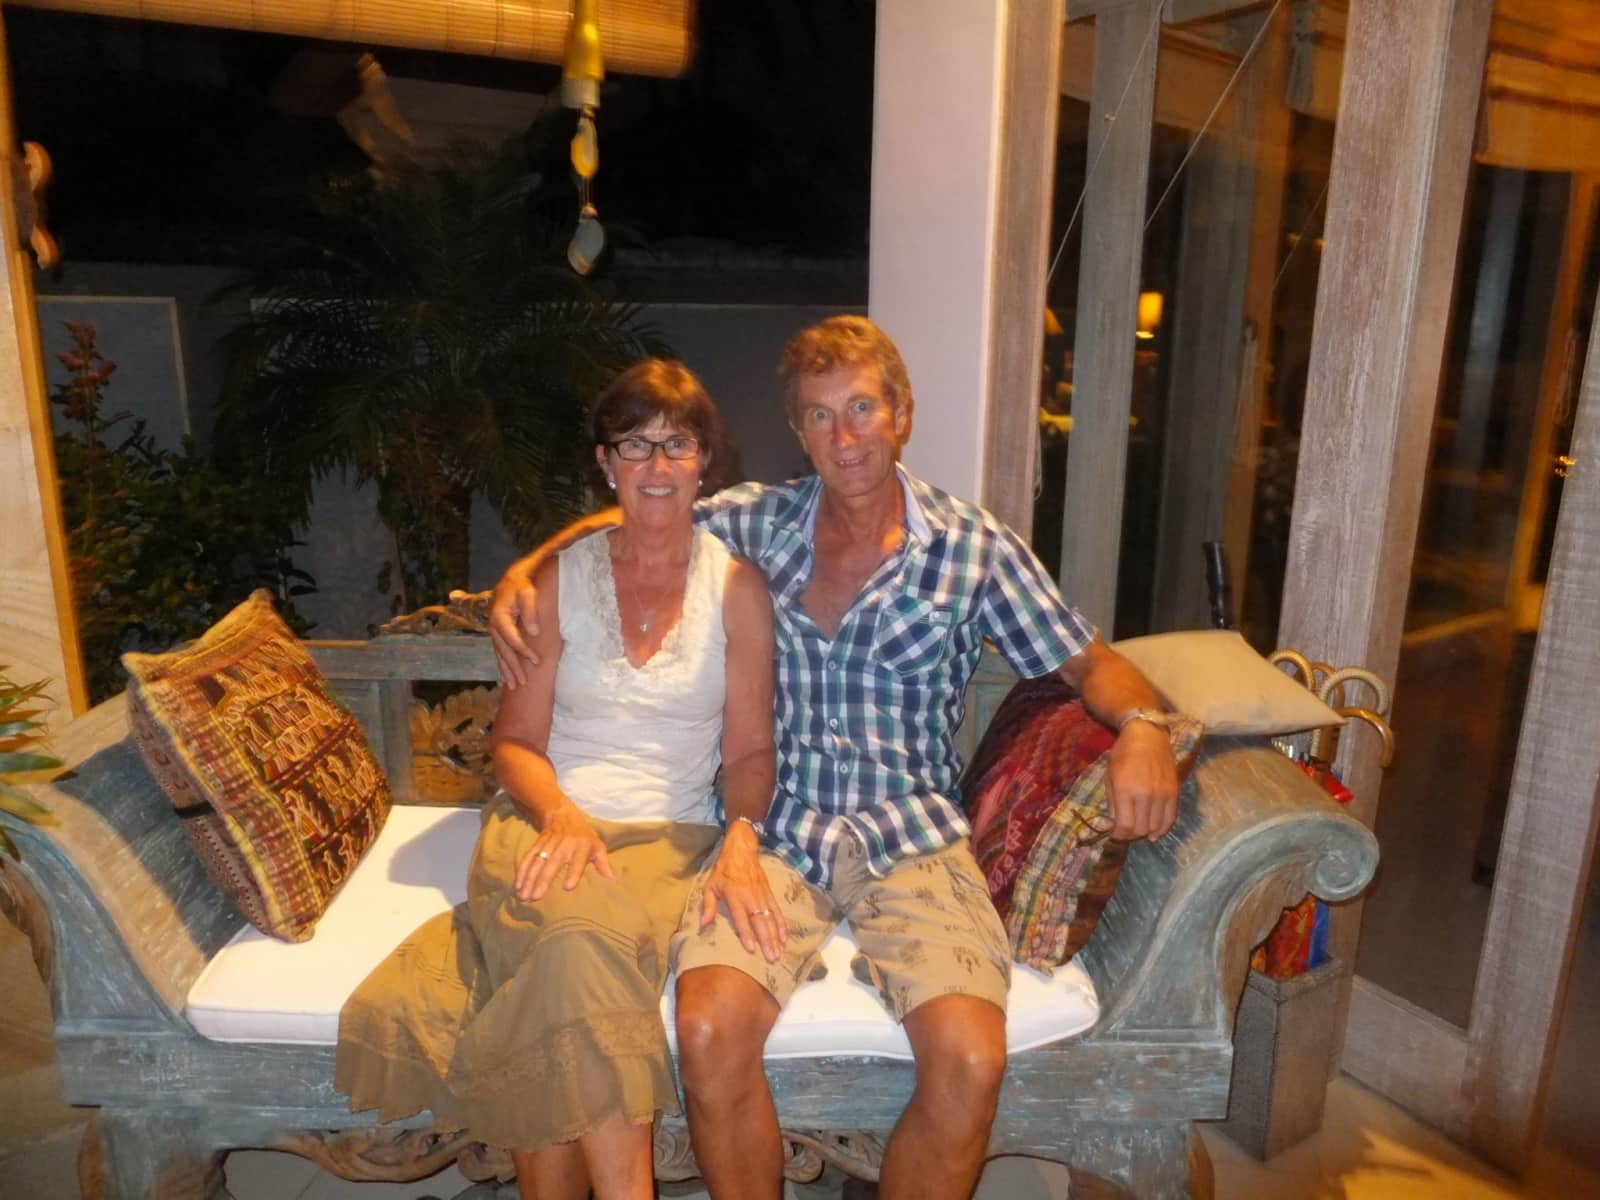 Robyn & Graeme from Napier, New Zealand